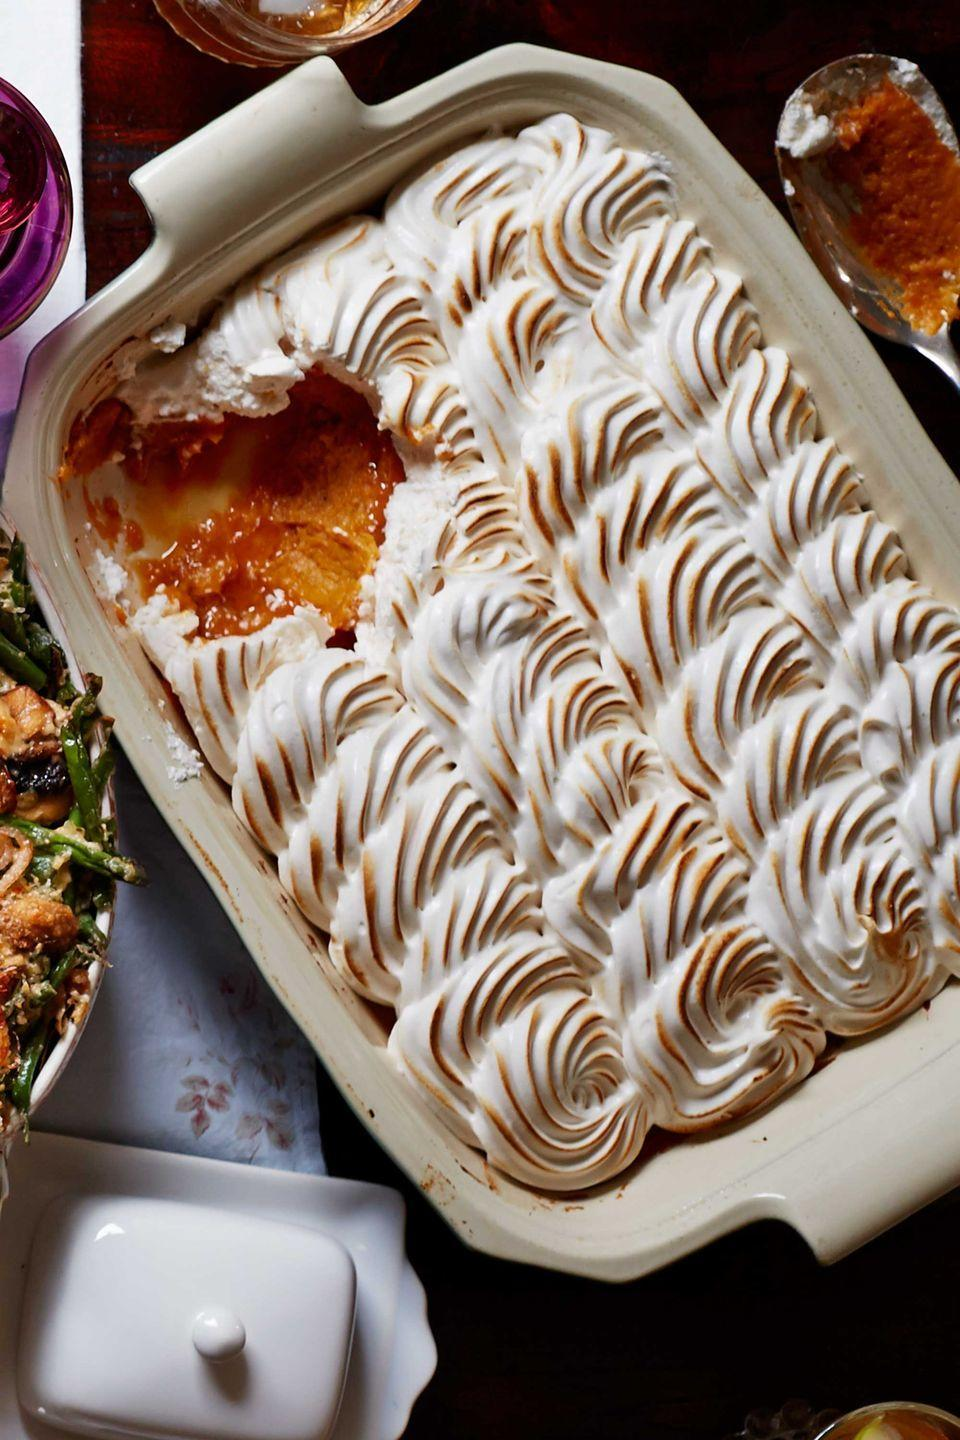 "<p>A sweet update to a holiday must-have. You can roast the sweet potatoes up to 2 days ahead, and a jar of marshmallow creme makes it sneakily easy.</p><p><strong><a href=""https://www.countryliving.com/food-drinks/recipes/a5865/maple-meringue-potato-casserole-recipe-clx1114/"" rel=""nofollow noopener"" target=""_blank"" data-ylk=""slk:Get the recipe"" class=""link rapid-noclick-resp"">Get the recipe</a>.</strong></p><p><strong><a class=""link rapid-noclick-resp"" href=""https://www.amazon.com/Puffed-Marshmallow-Creme-Ounce-Jars/dp/B002VC23JQ/?tag=syn-yahoo-20&ascsubtag=%5Bartid%7C10050.g.34554232%5Bsrc%7Cyahoo-us"" rel=""nofollow noopener"" target=""_blank"" data-ylk=""slk:SHOP MARSHMALLOW CREME"">SHOP MARSHMALLOW CREME</a><br></strong></p>"